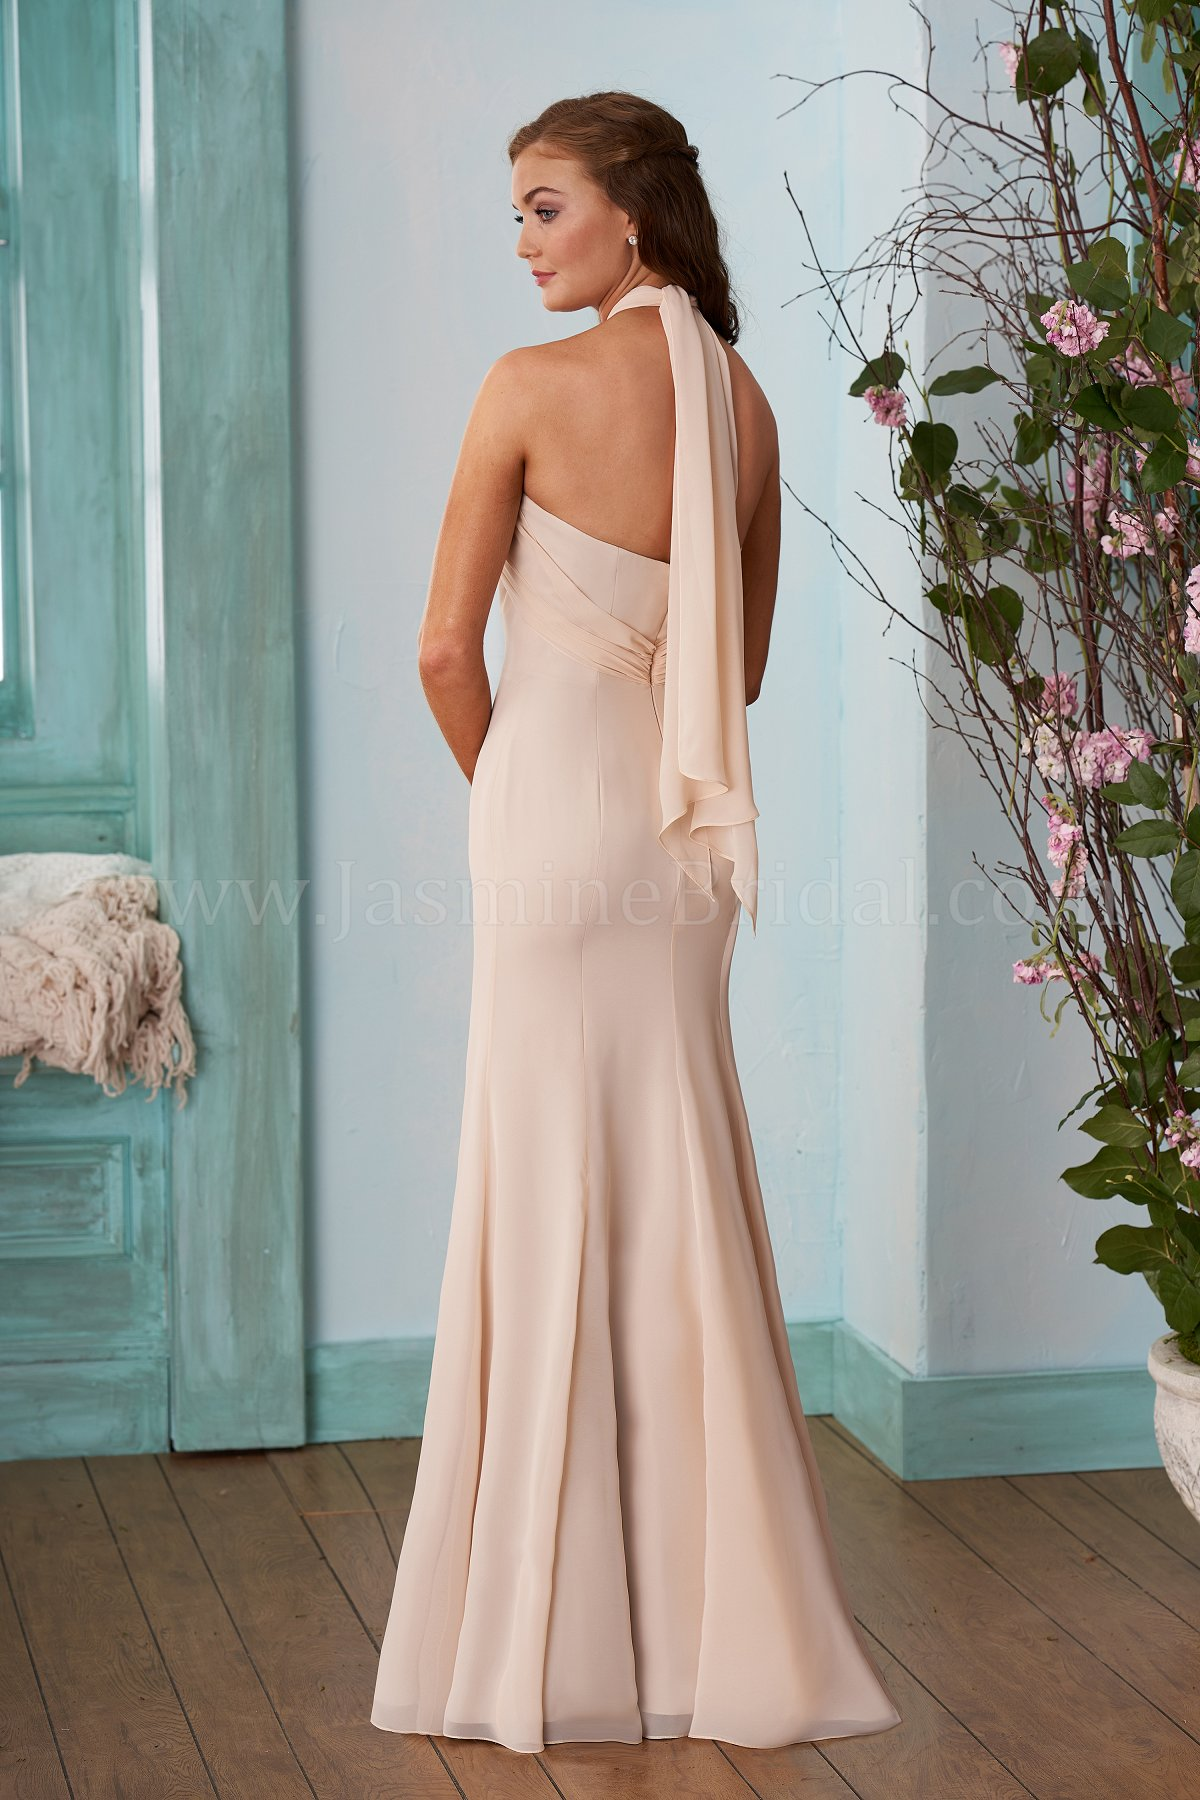 bridesmaid-dresses-B203005-B